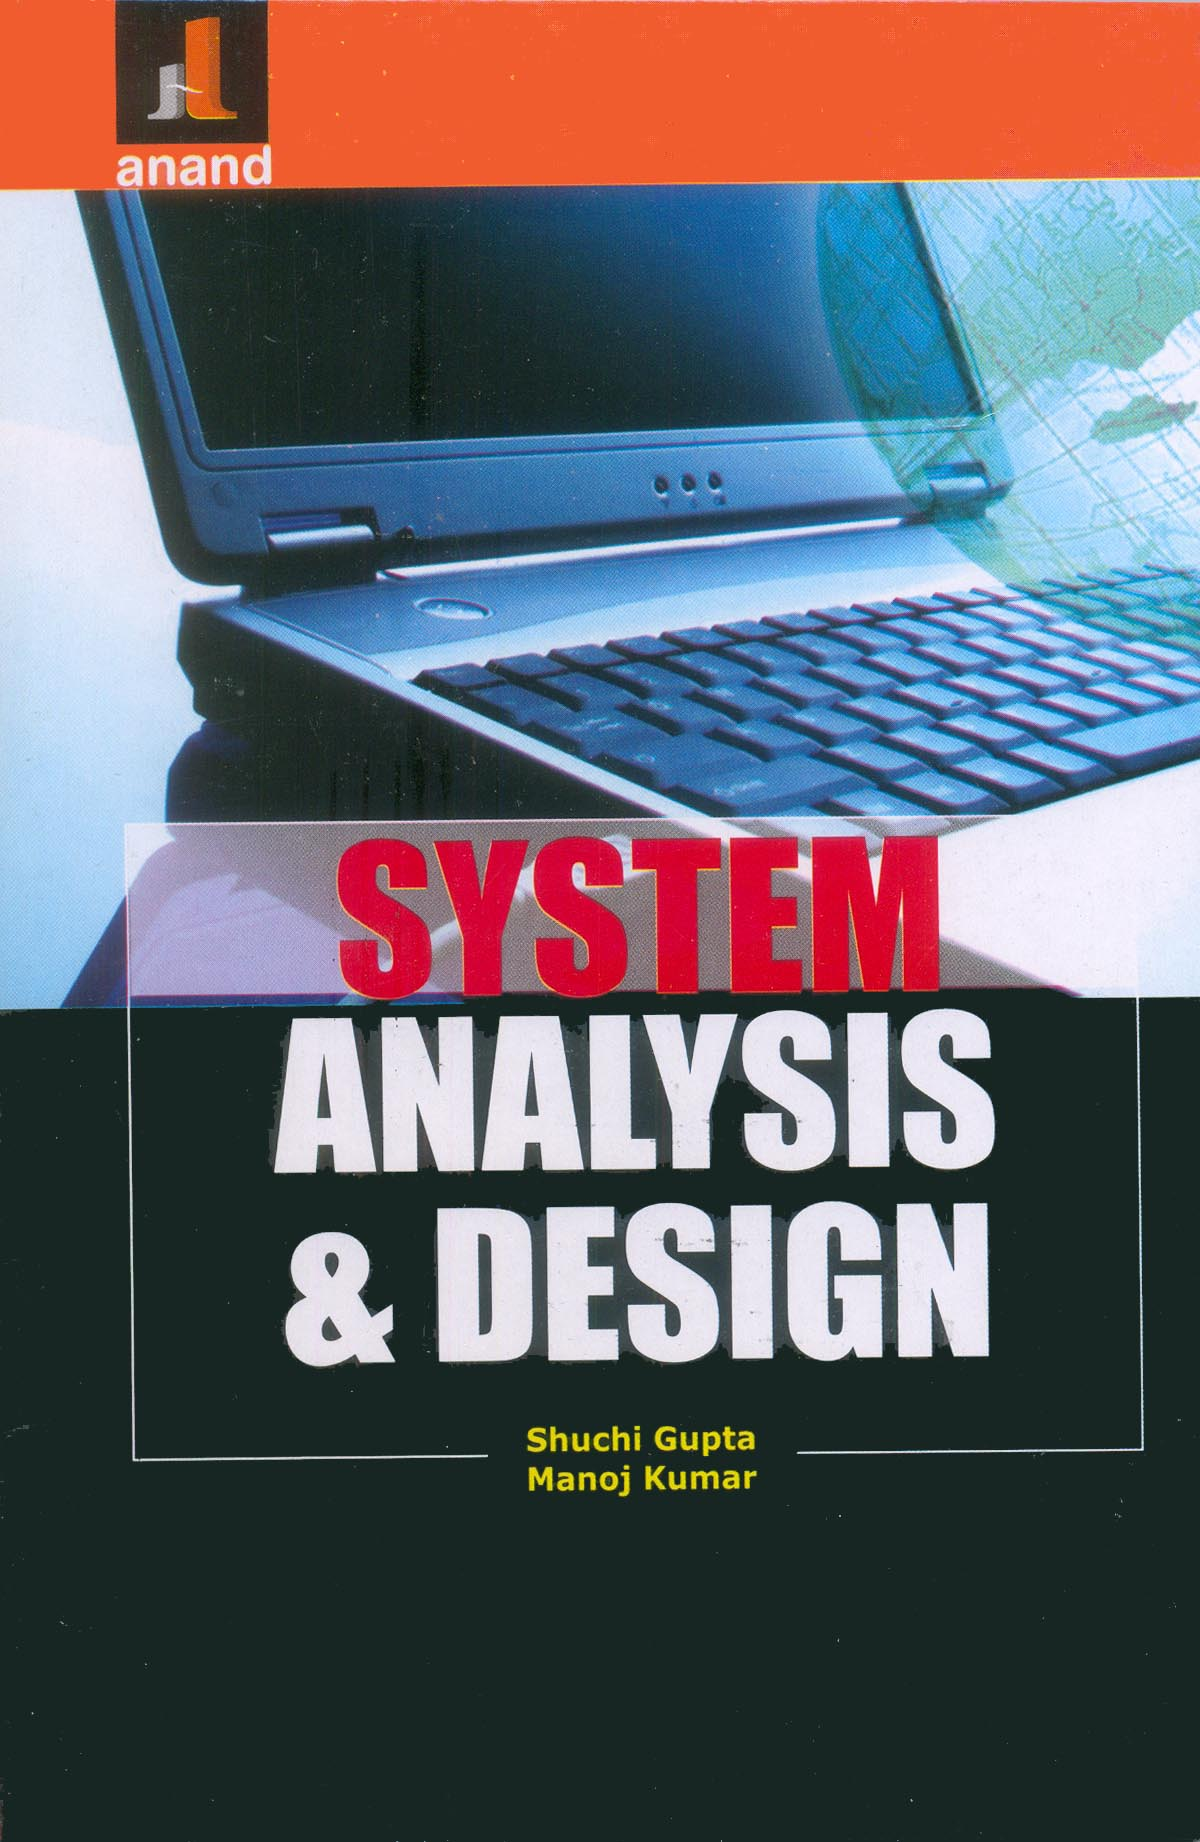 203 SYSTEM ANALYSIS AND DESIGN